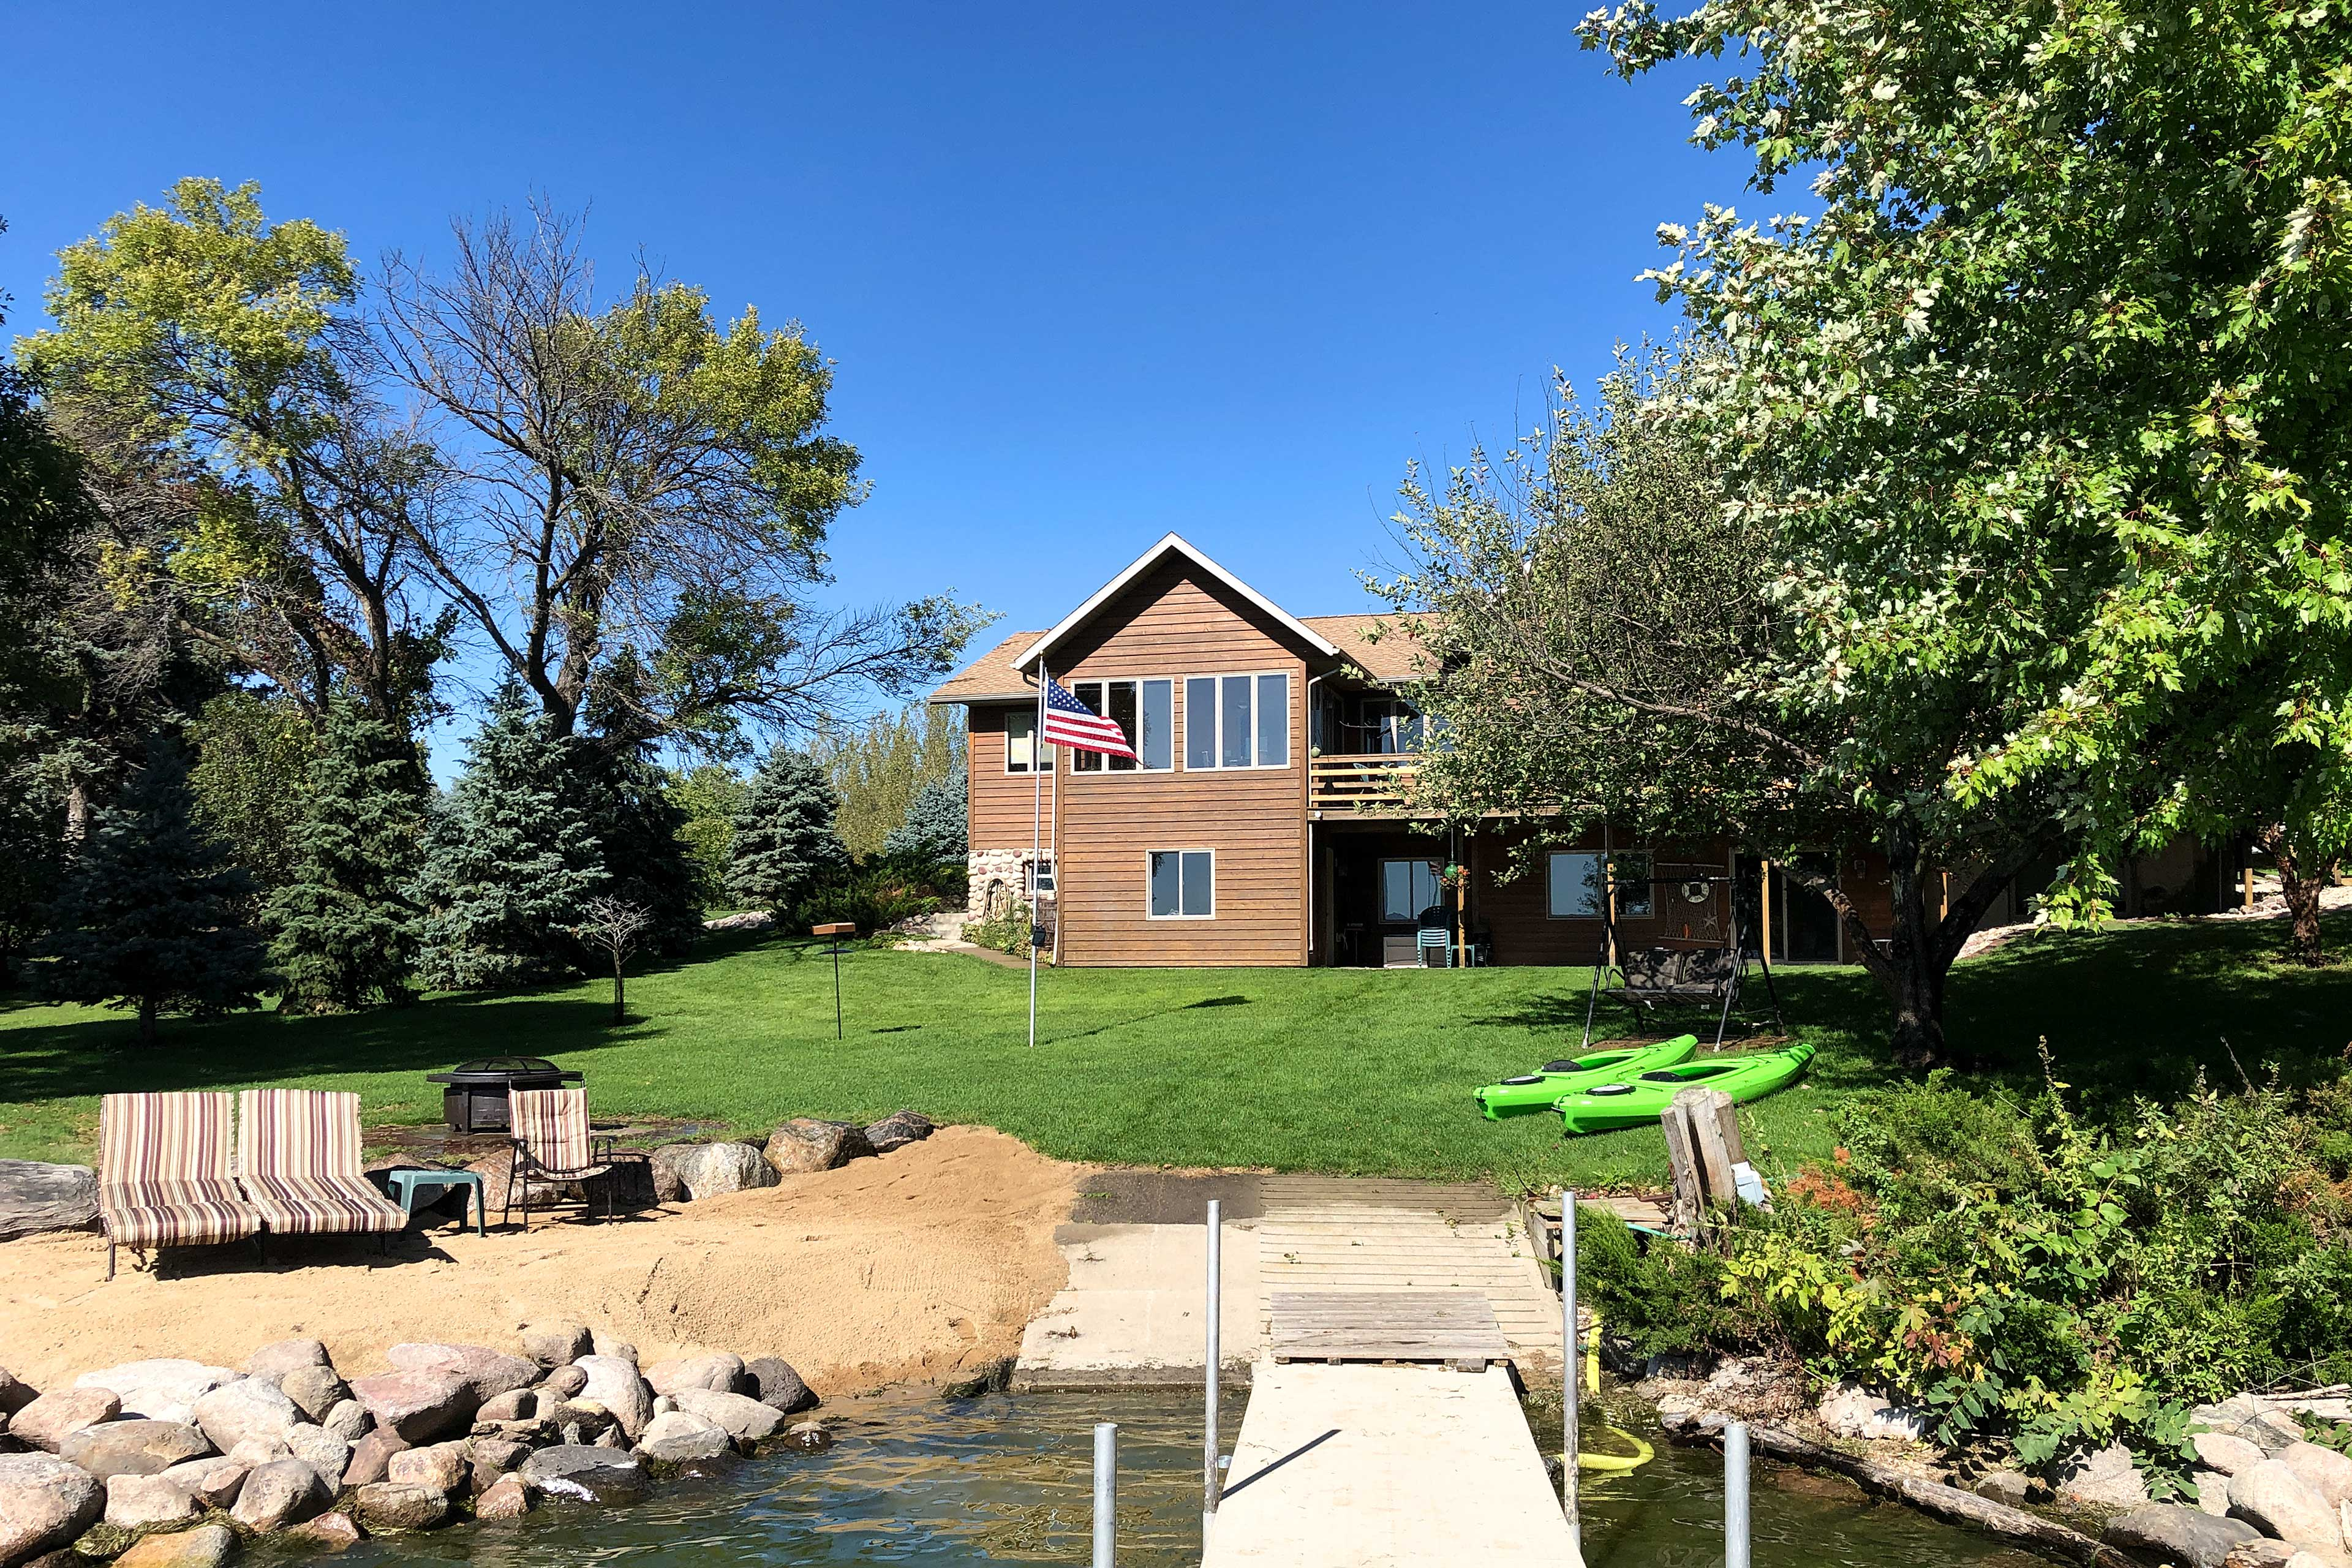 Enjoy lakefront living at its best with all the perks of this rental home.